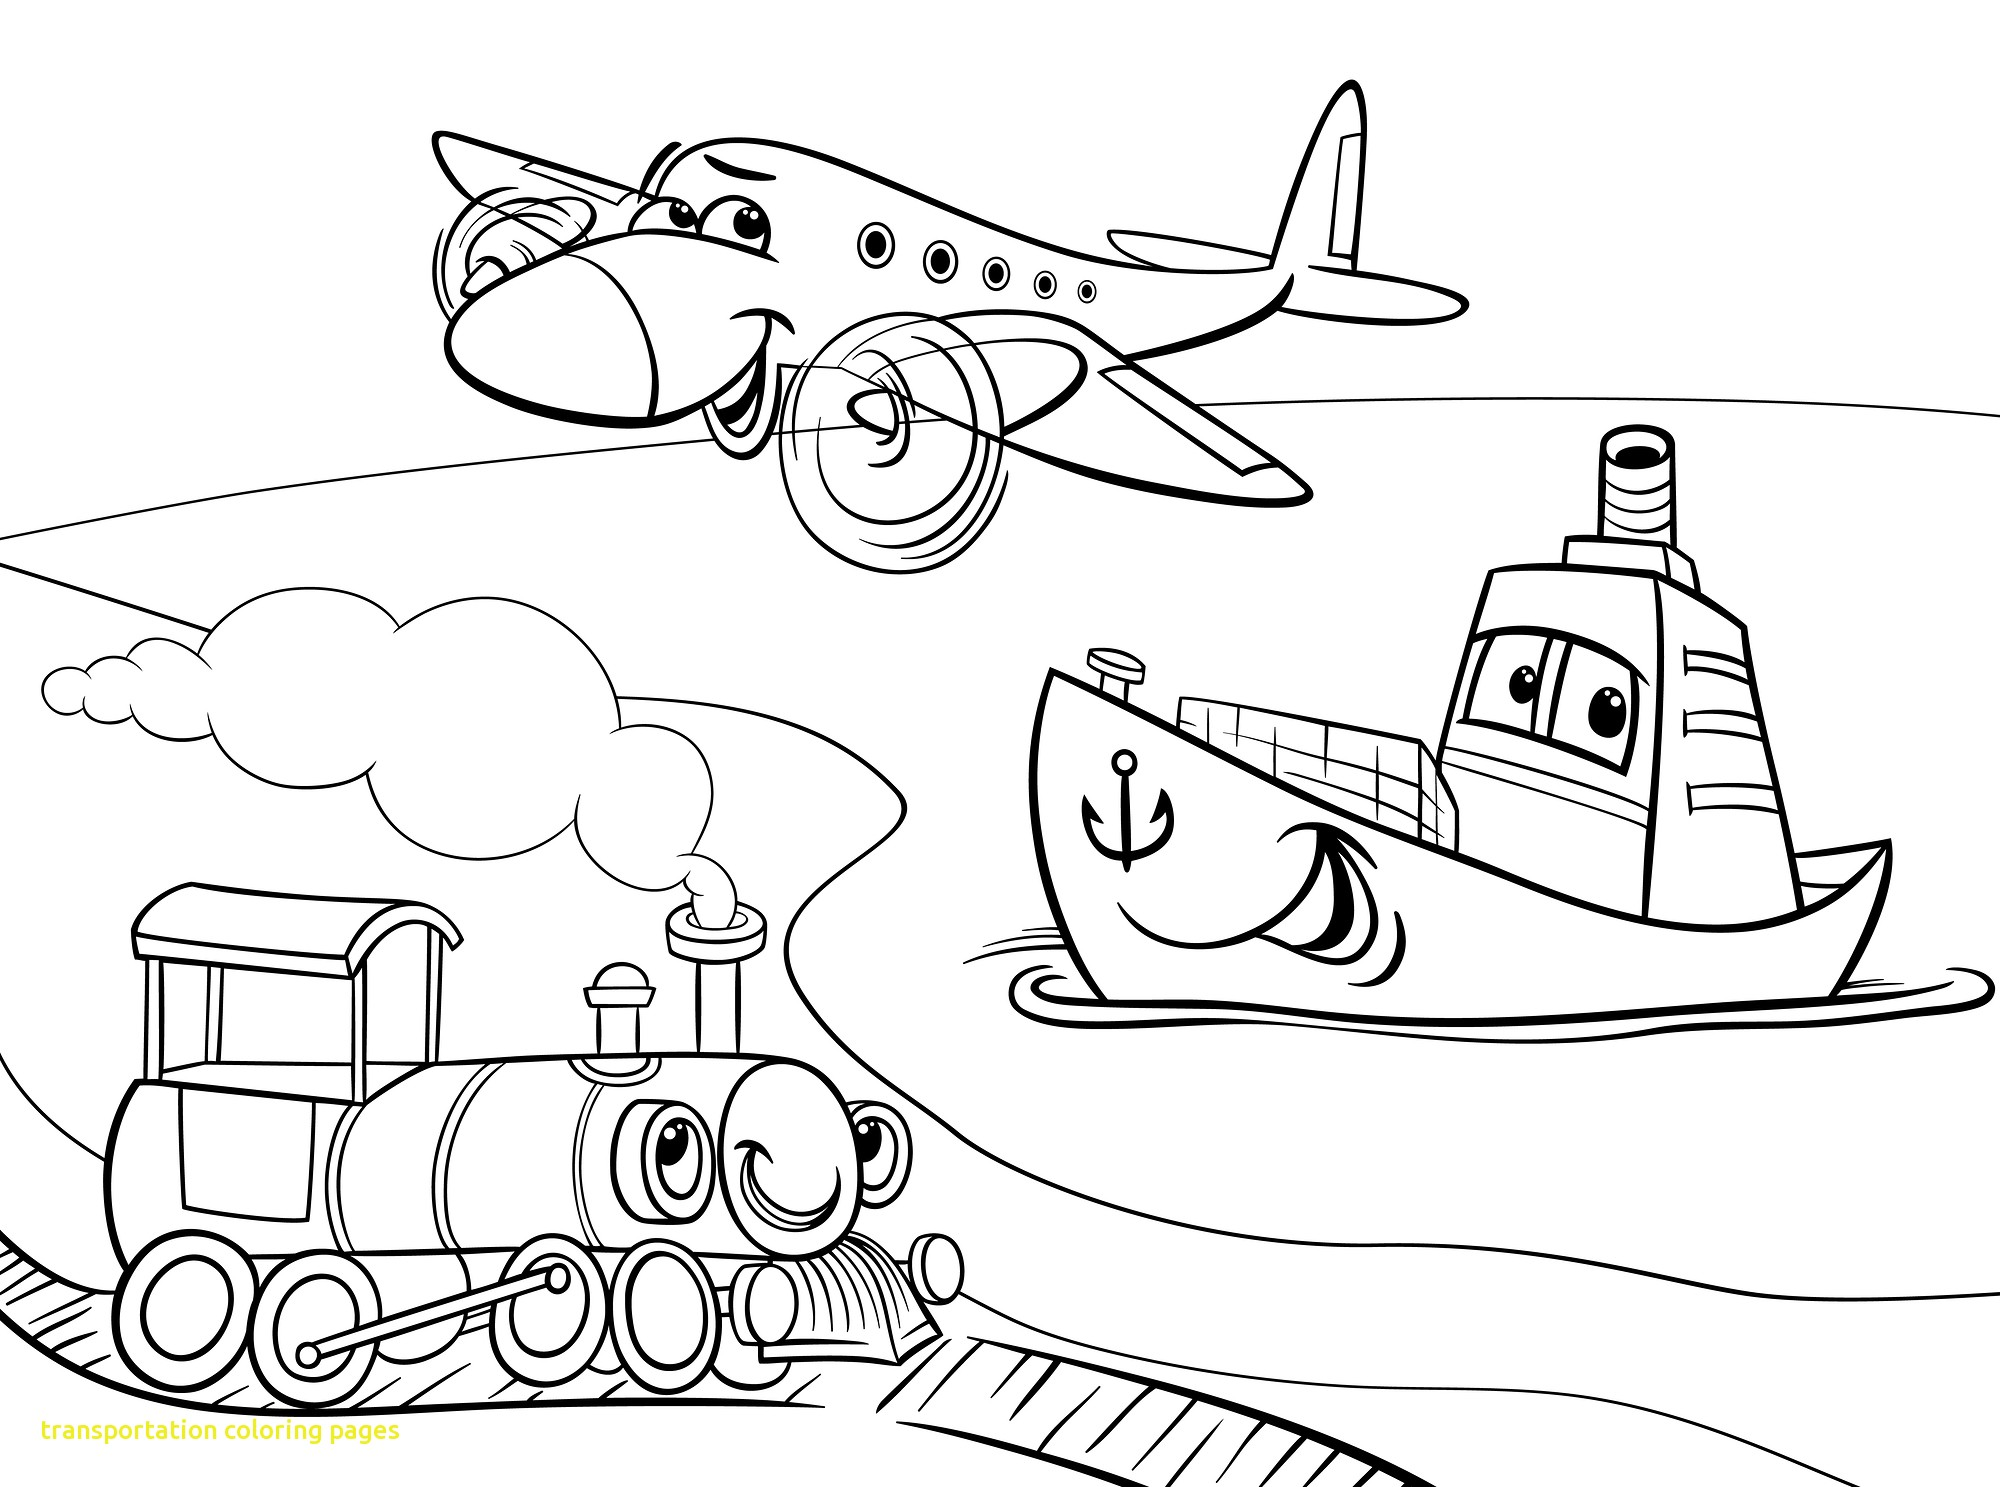 2000x1487 Transportation Coloring Pages With Transportation Coloring Pages